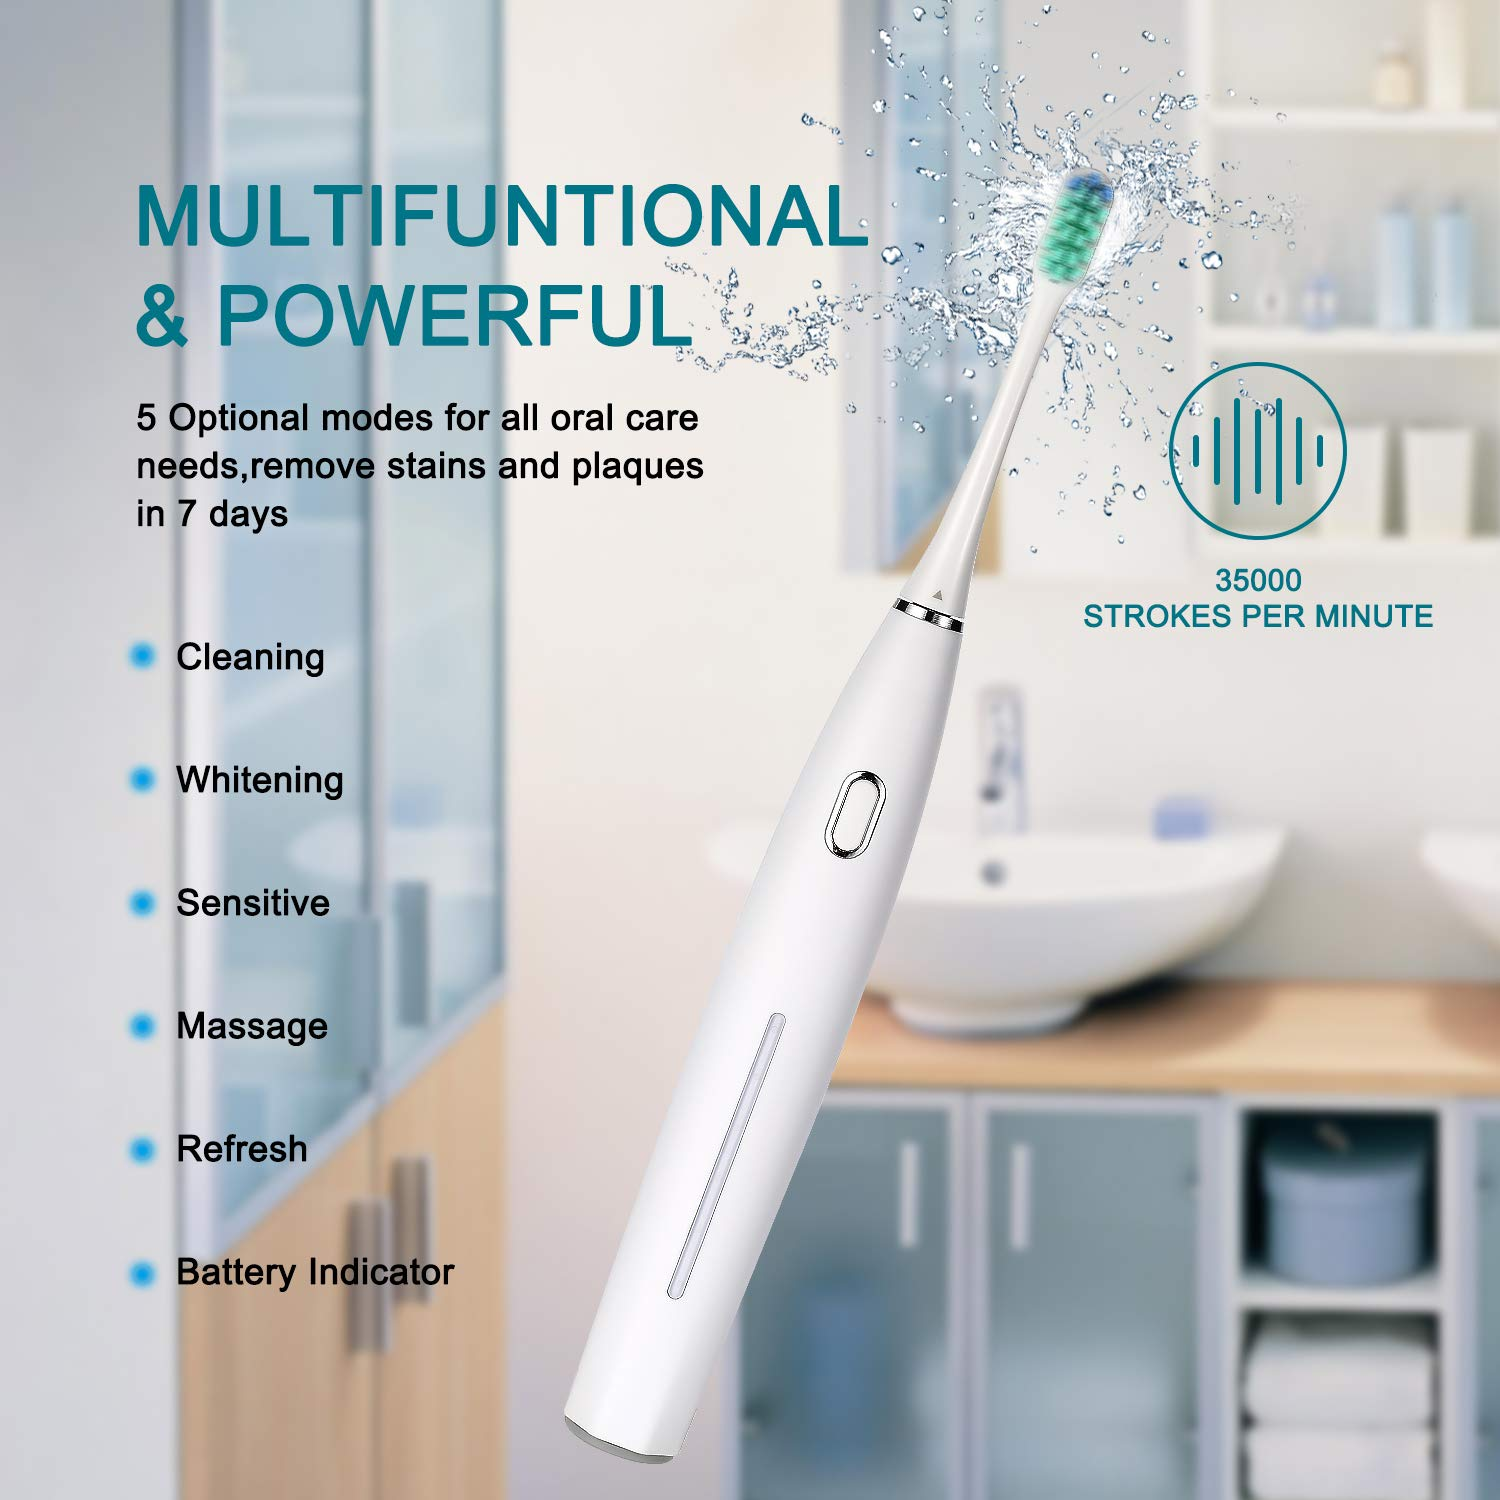 2 Sonic Electric Toothbrushes 5 Modes 6 Brush Heads Powered Toothbrush 4 Hours Charge Minimum Use 30 Days, Built-in Smart Timer USB Rechargeable Toothbrushes for Couple & Families(1 Black and 1 White)